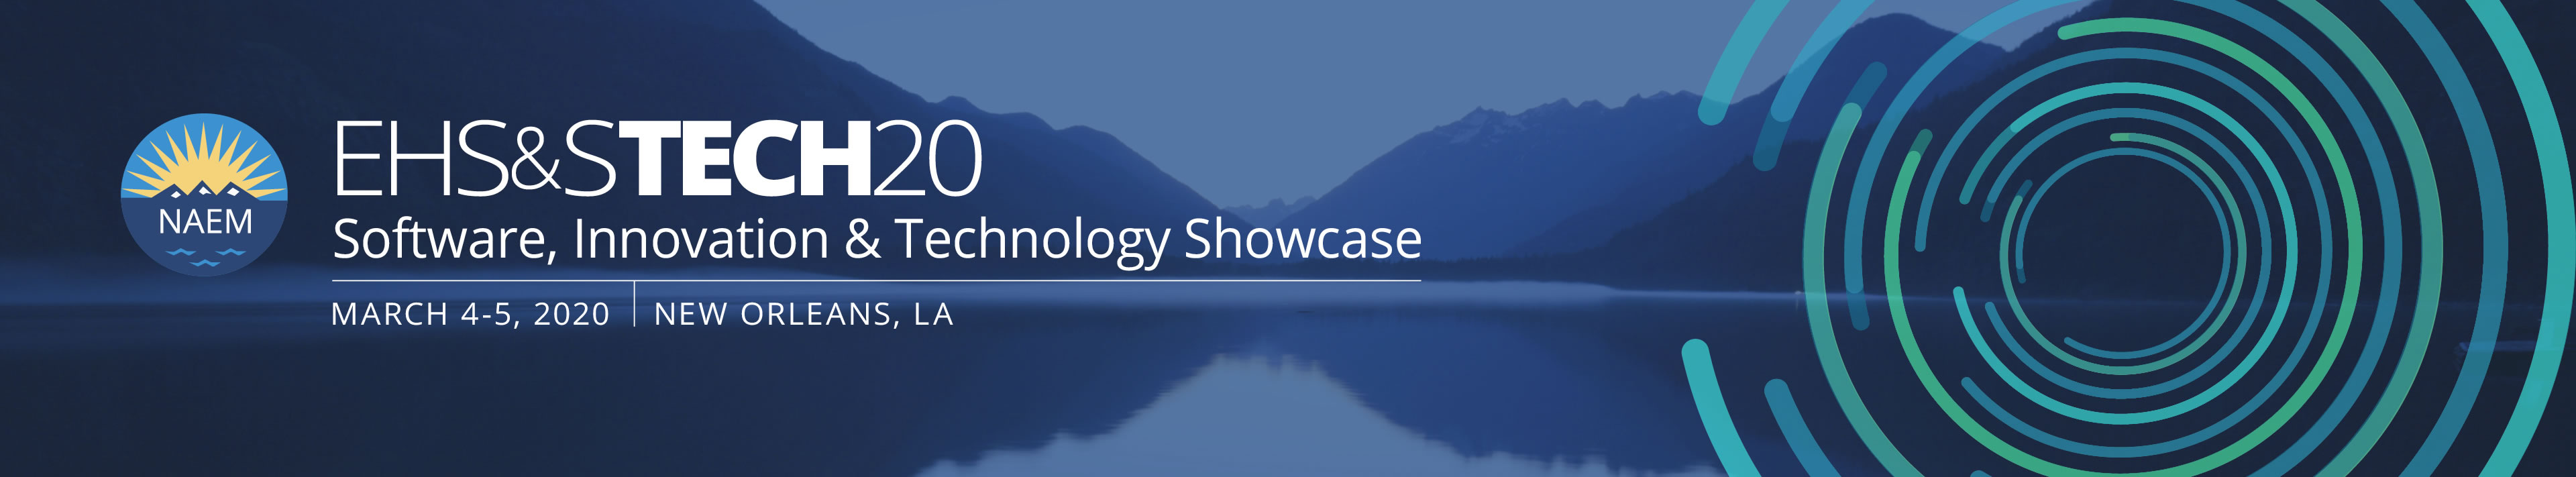 NAEM's 2020 Software, Innovation and Technology Showcase